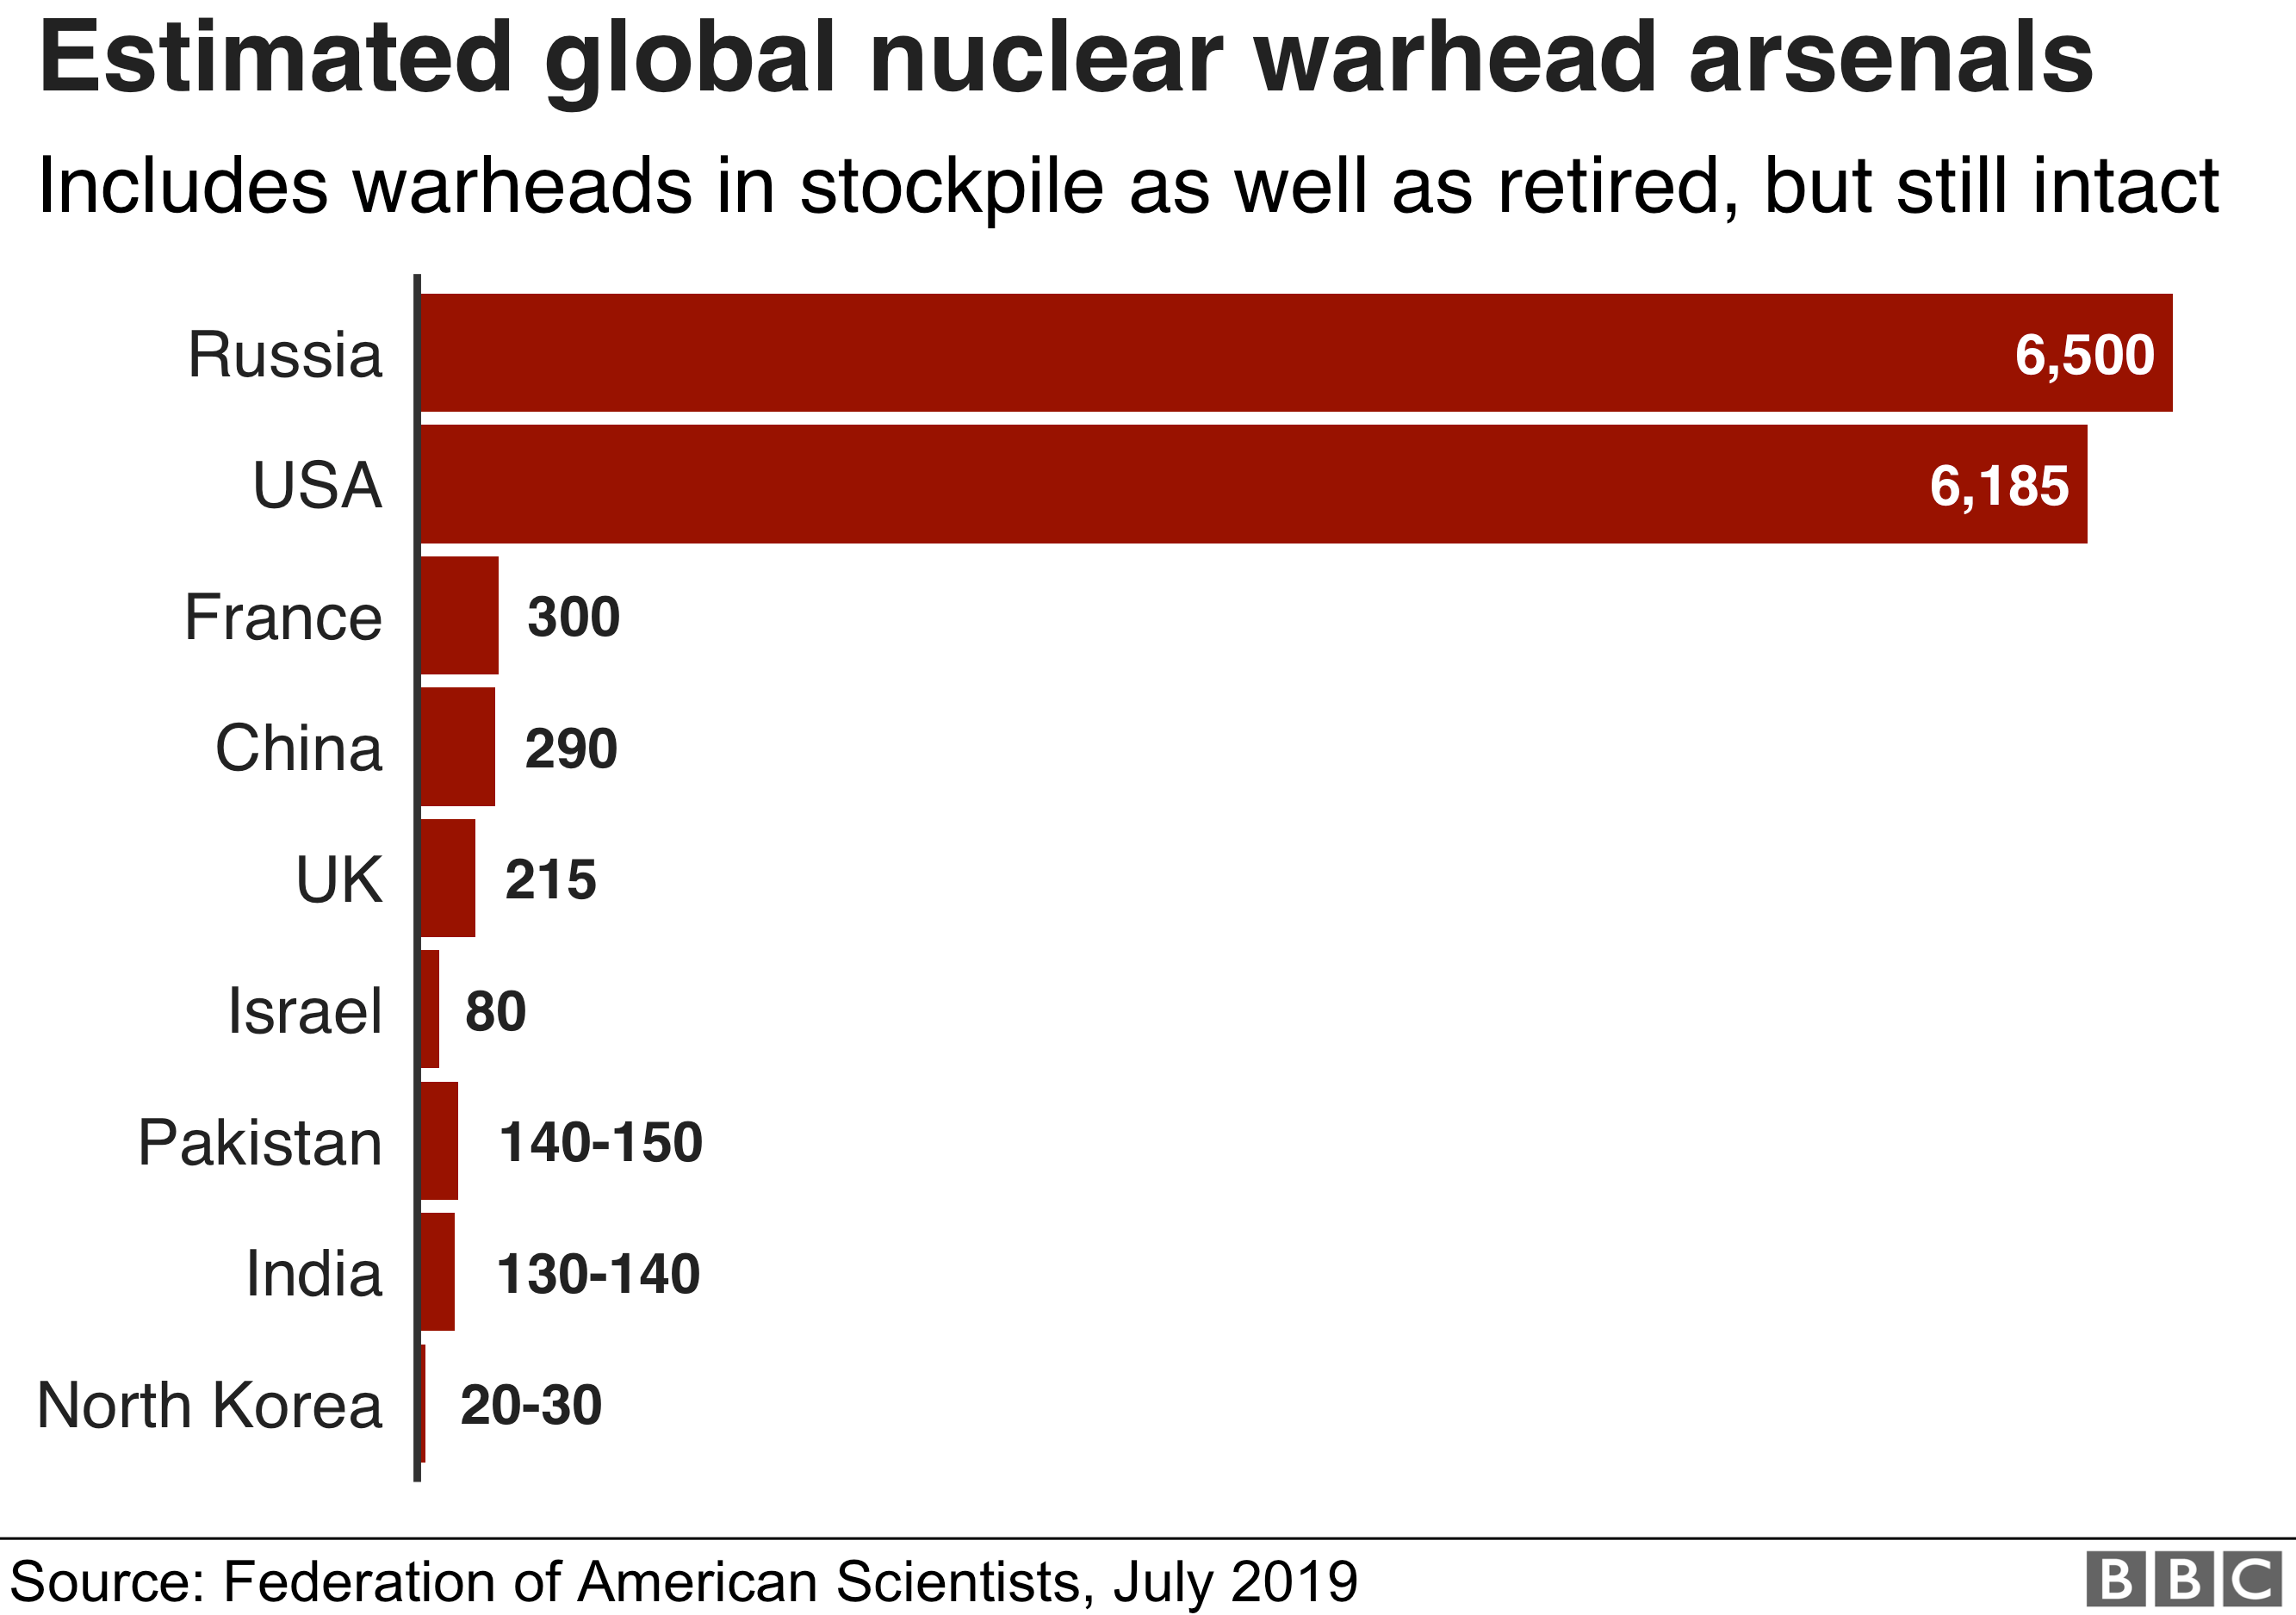 Bar chart showing estimated global nuclear warhead arsenals broken down by country